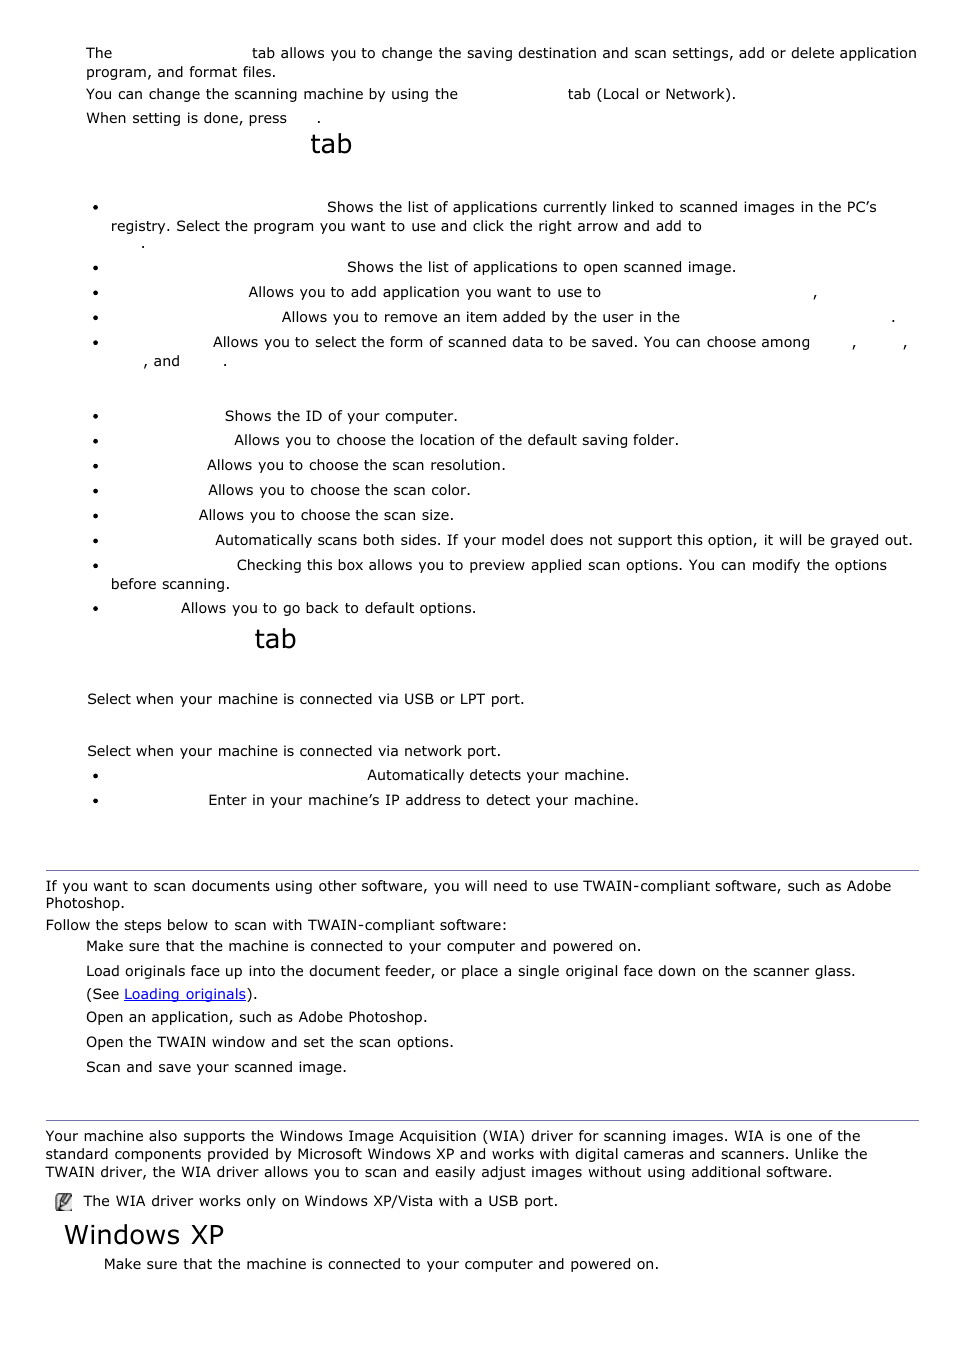 Scanning with twain-enabled software, Scanning using the wia